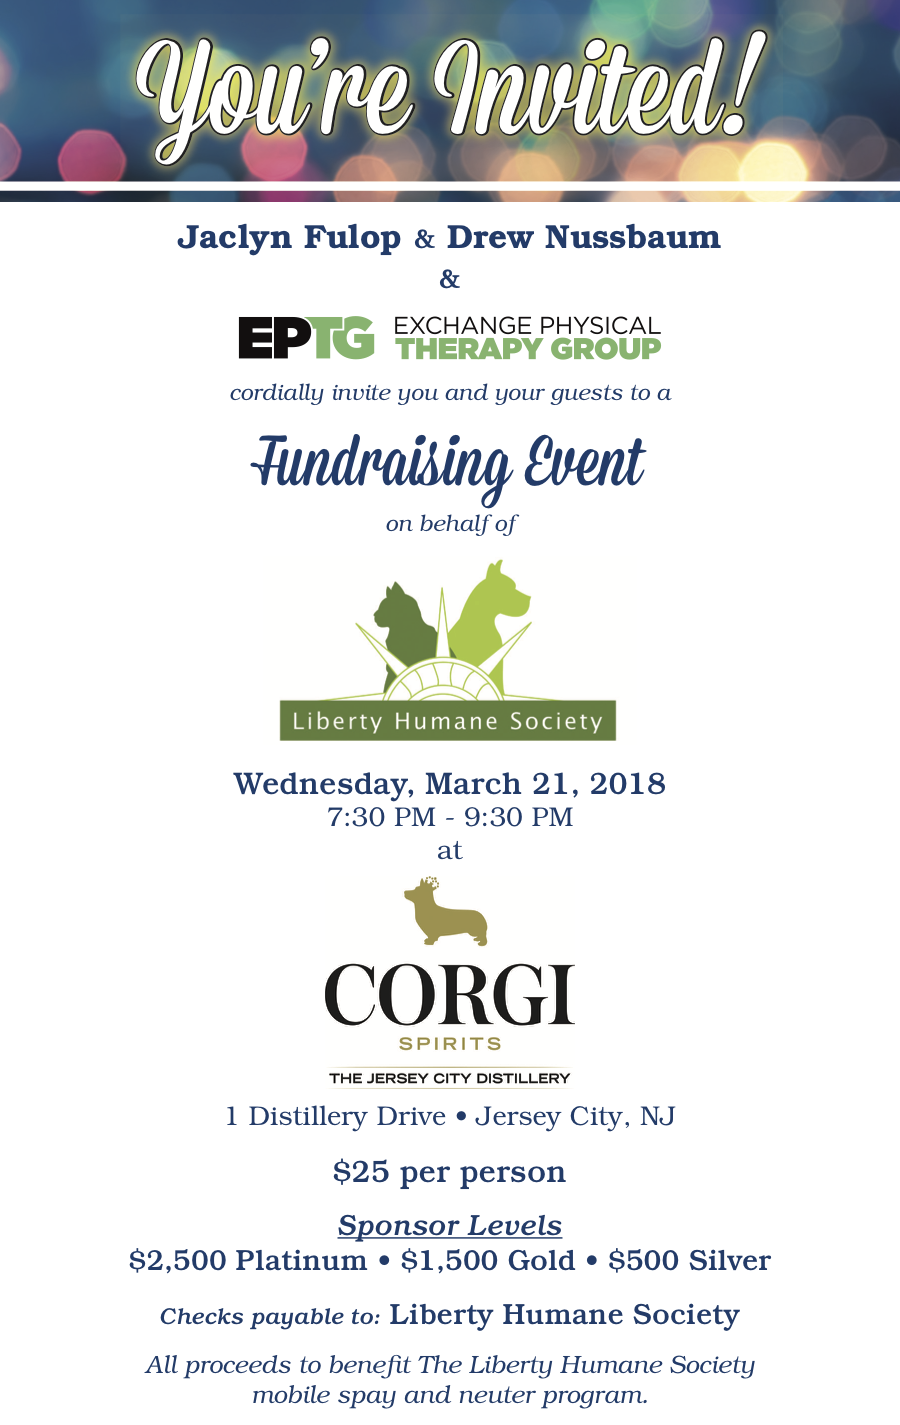 EPTG_Fundraiser_Invite_copy_2.png